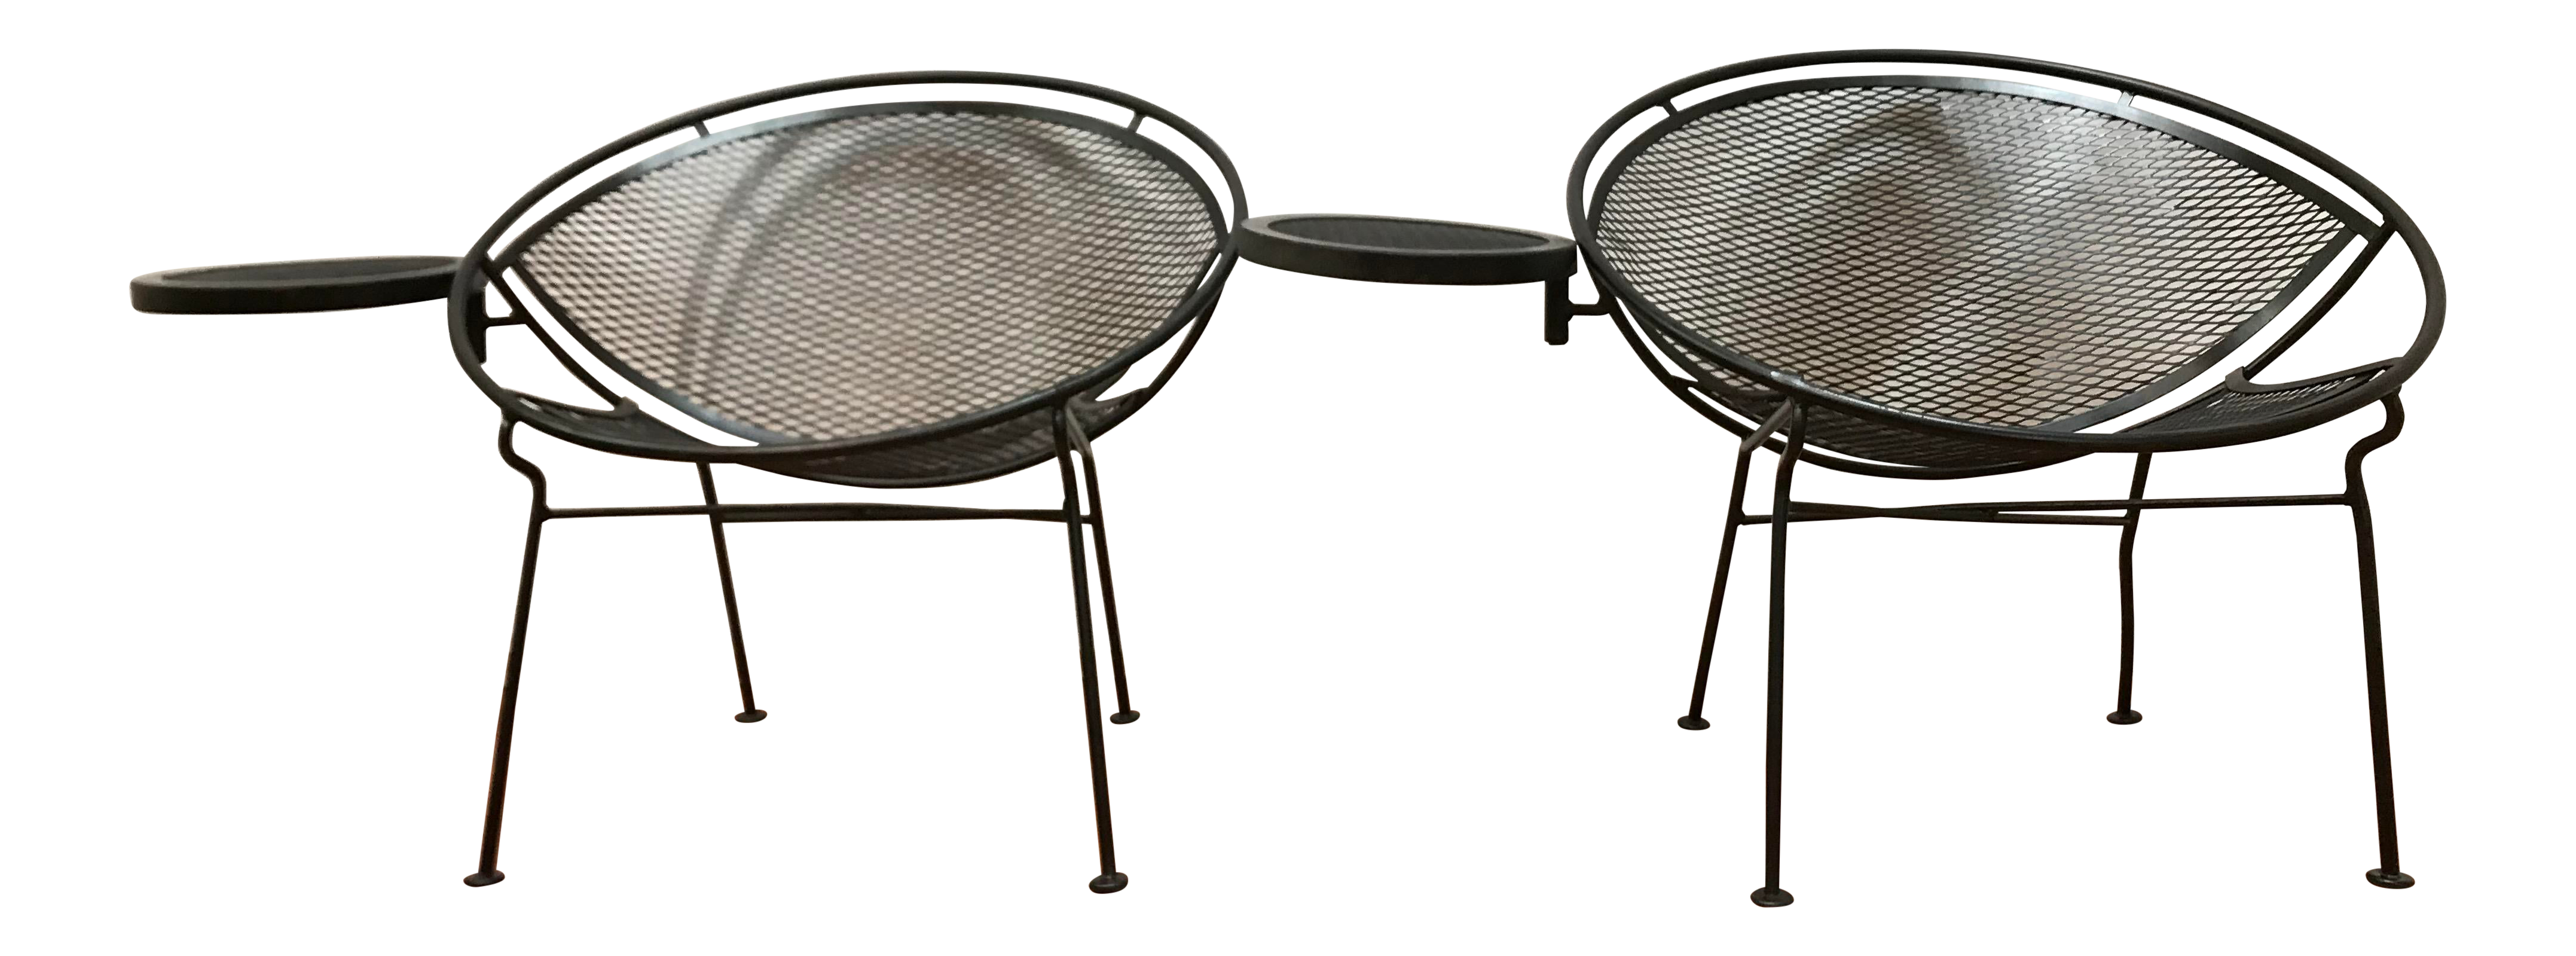 1950s Salterini Tempestini Radar Space Age Mcm Mid Century Modern Wrought Iron Lounge Patio Chairs With Tray Set 4 A Pair Chairish